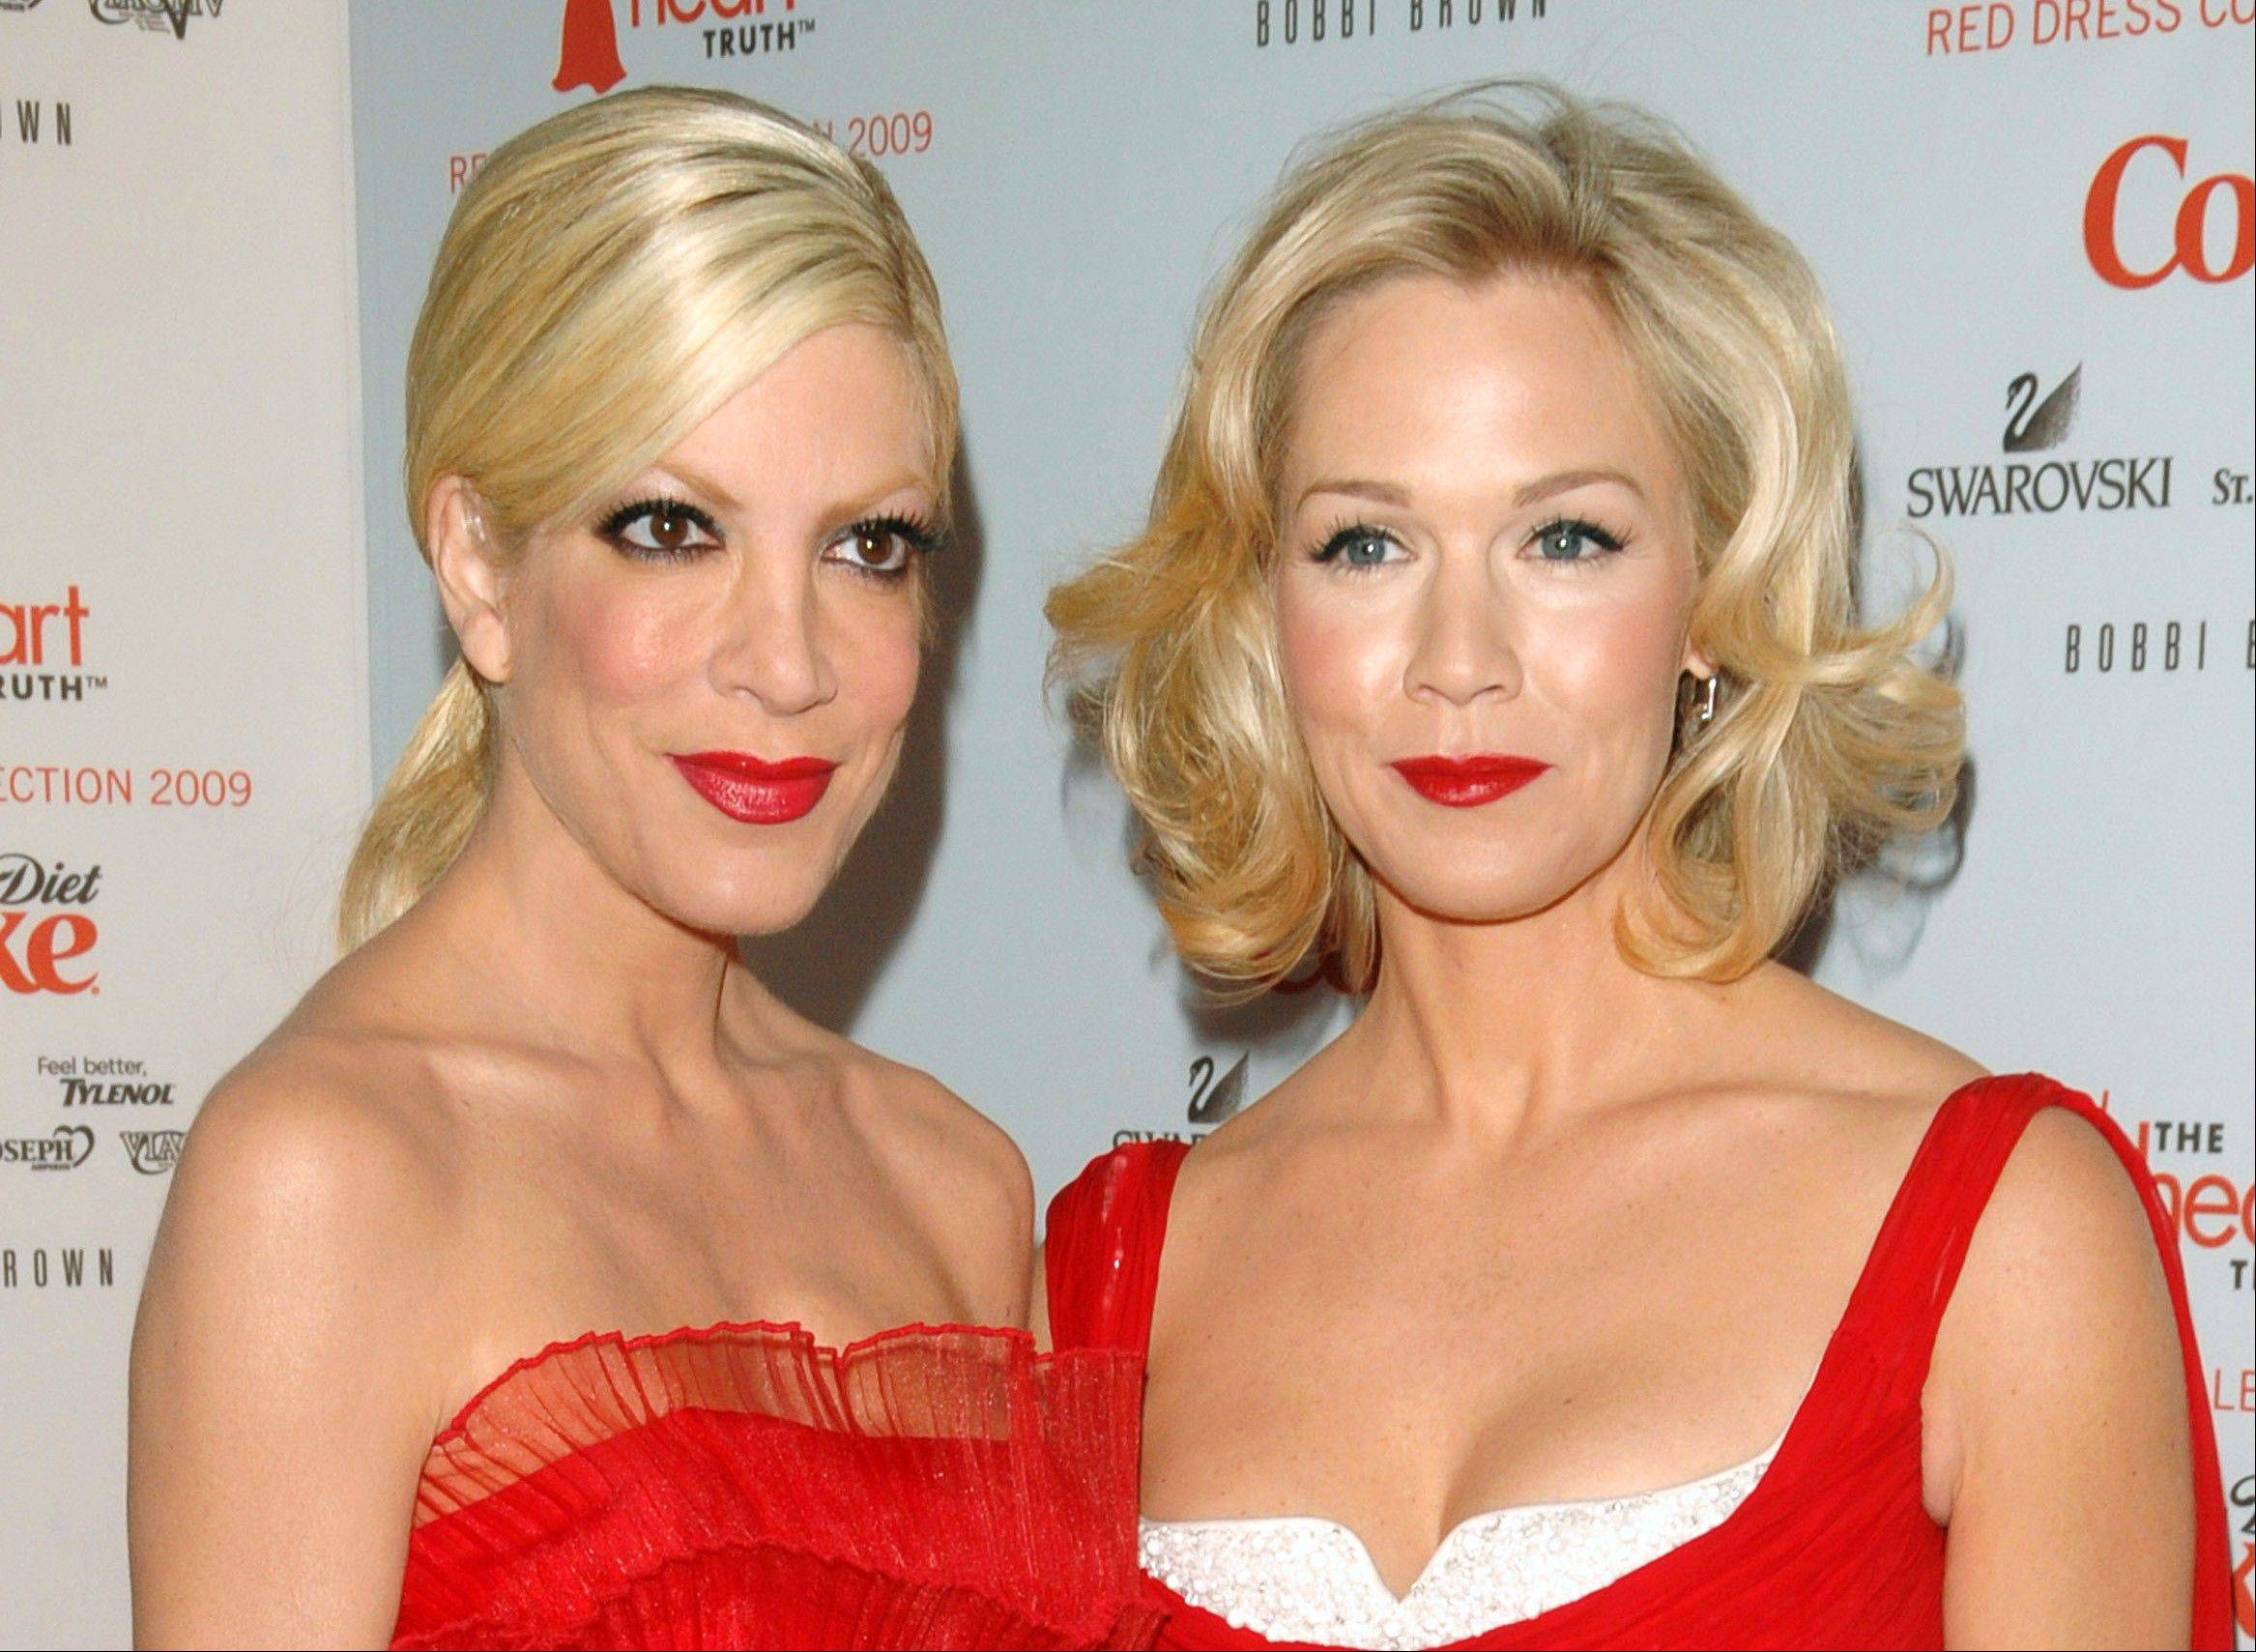 "This Feb. 13, 2009 file photo shows actors Tori Spelling, left, and Jennie Garth at the Heart Truth's Red Dress collection during Fashion Week in New York. The former ""Beverly Hills, 90210"" stars are reuniting. The actresses will co-star and executive produce the new ABC Family series ""Mystery Girls."" In the series, Spelling and Garth play Holly and Charlie, who were on a crime-solving series in the 90's that was the highest-rated show on TV. Spelling's Holly is looking to reignite her fame and opens a detective agency. She persuades Charlie, now a suburban mom to help. ""Mystery Girls"" is set to shoot in November."